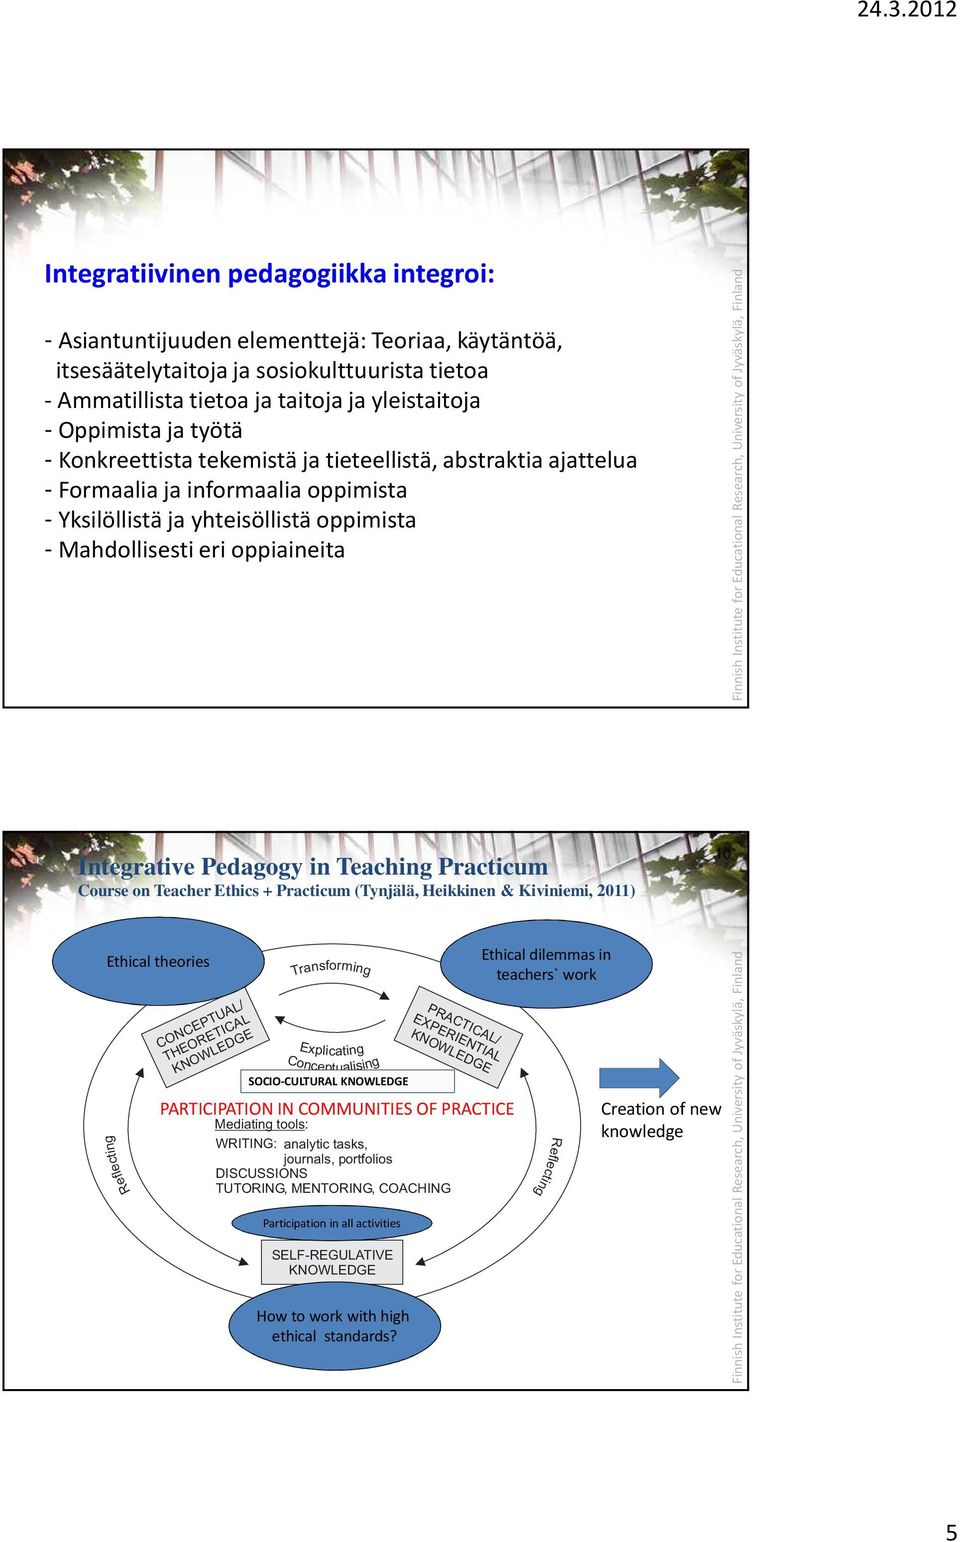 Pedagogy in Teaching Practicum Course on Teacher Ethics + Practicum (Tynjälä, Heikkinen & Kiviniemi, 2011) 10 Ethical theories CONCEPTUAL/ THEORETICAL Transforming Explicating Conceptualising